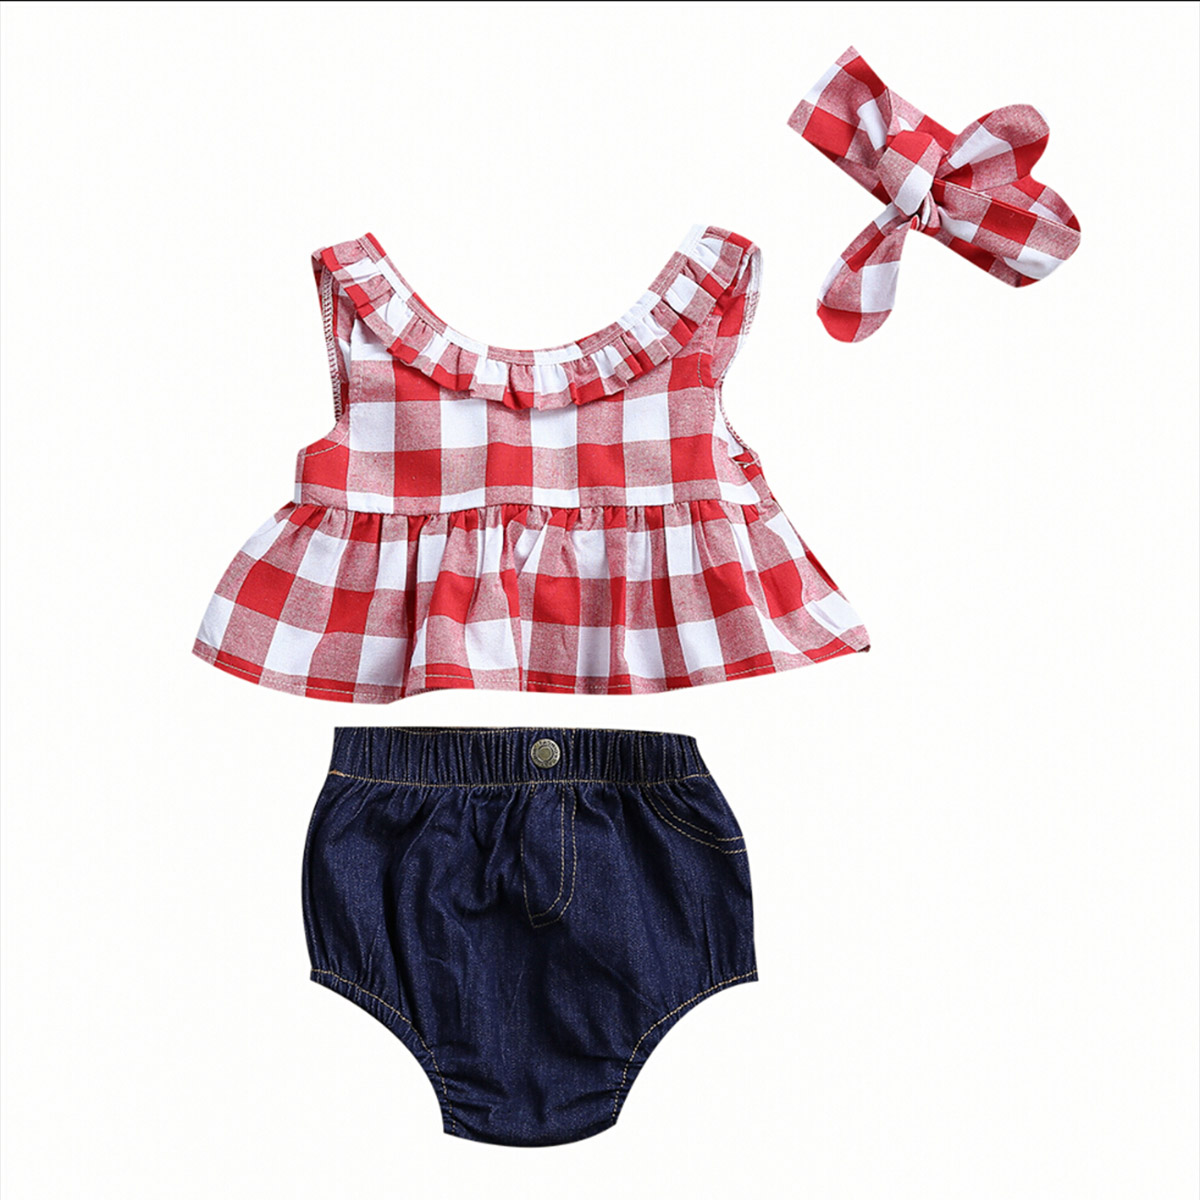 Tops Sleeveless Plaid T-Shirts Jeans Shorts Headband Kids Clothing Outfits Infant Kids Baby Girls Clothes Sets Outfit Sleeveless off shoulder tops t shirts denim pants hole jeans 3pcs outfits set clothing fashion baby kids girls clothes sets